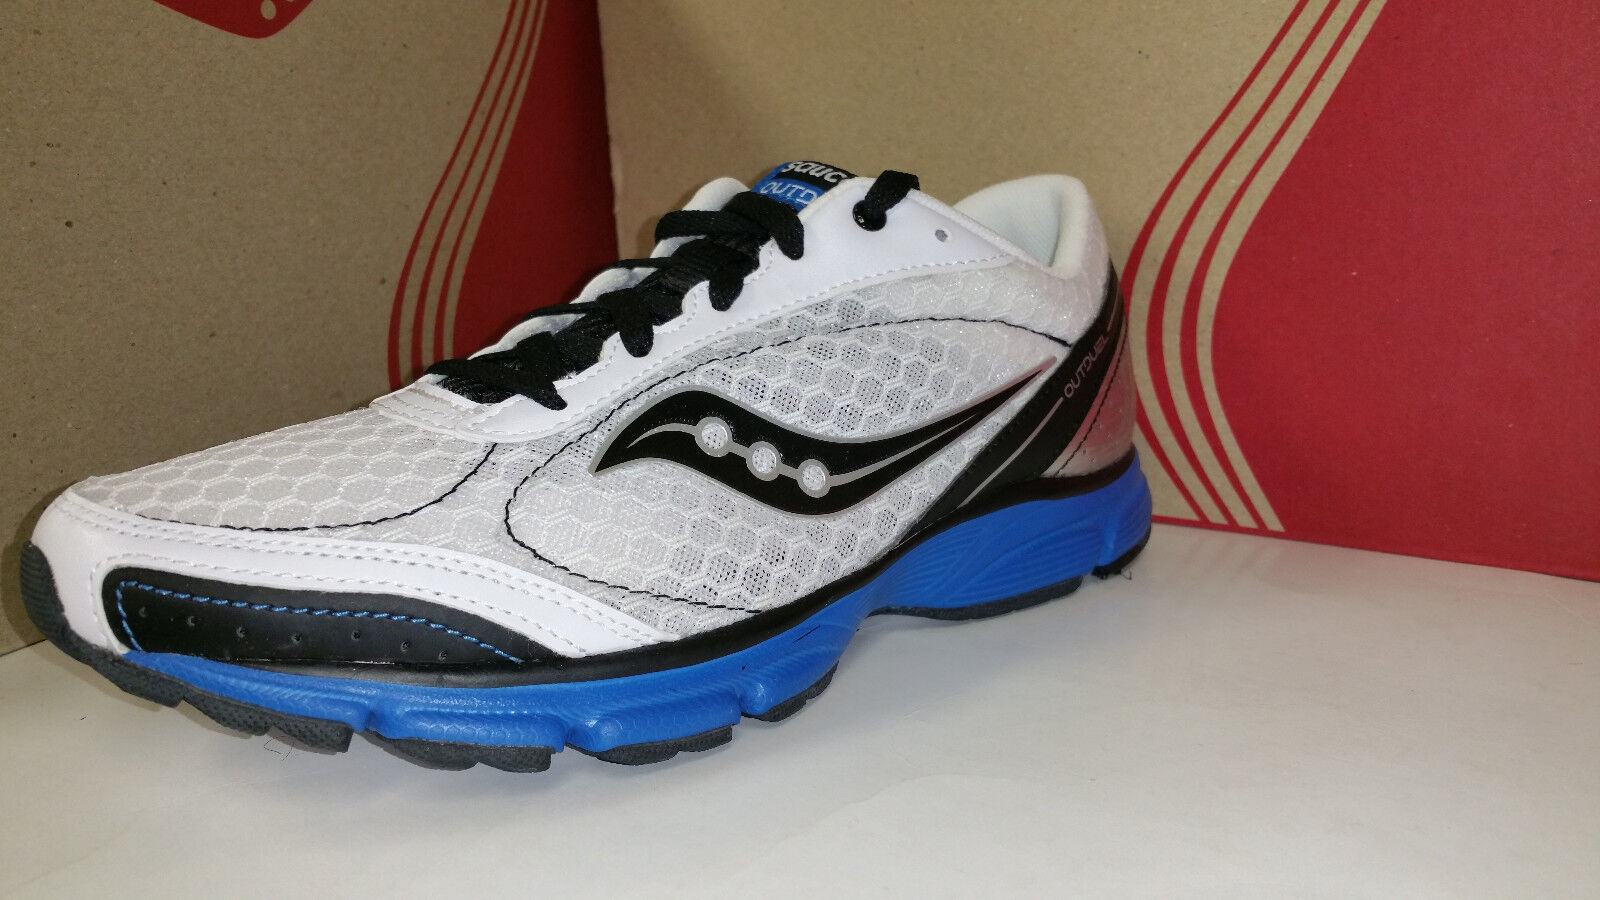 Saucony Men's Grid OutDuel White Black Royal Light Weight Running shoes 7.5-11.5